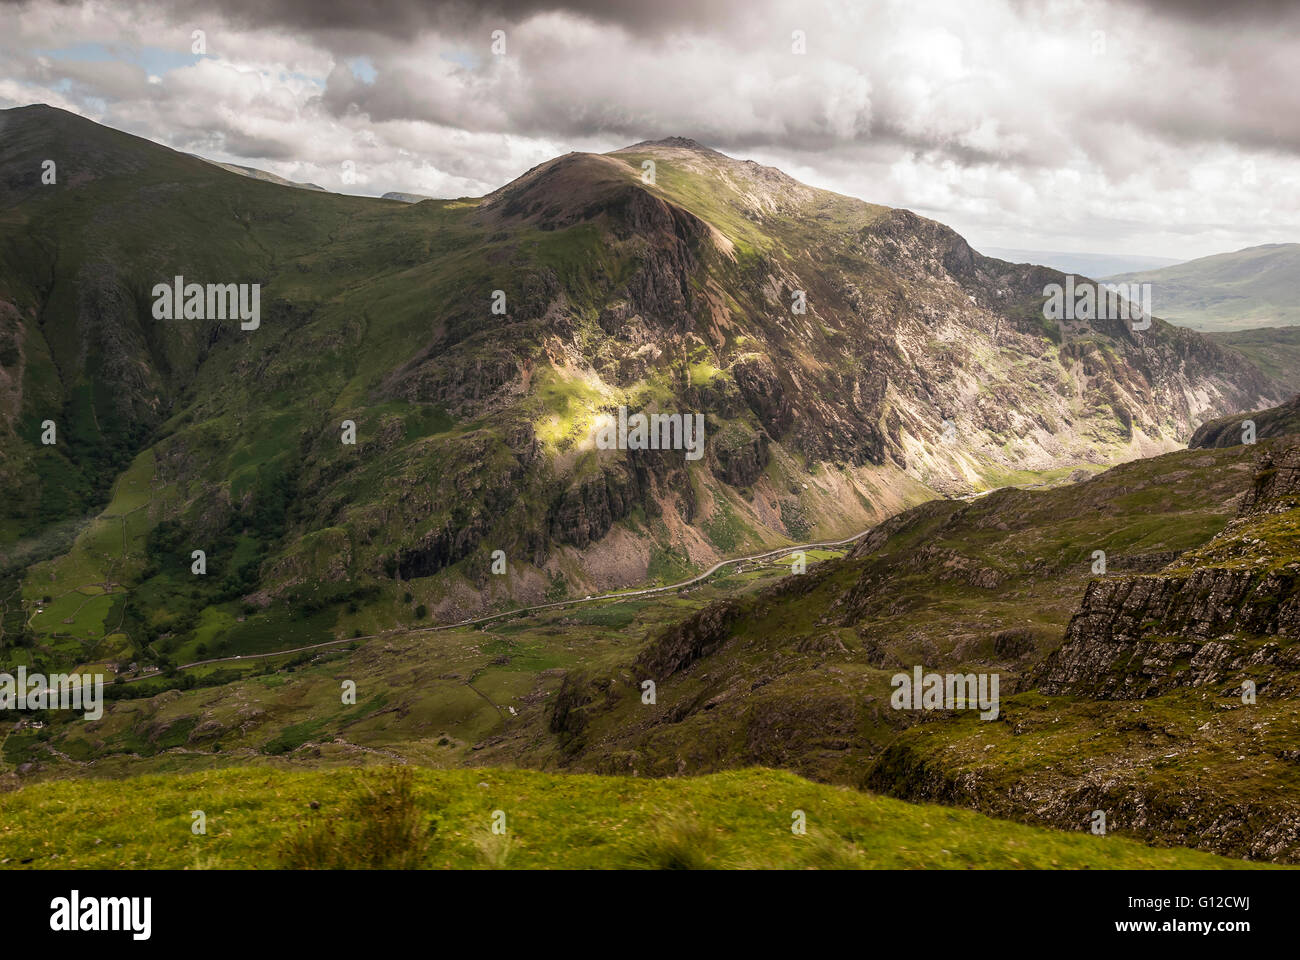 The Llanberis pass road visible from mount Snowdon. Snowdonia North Wales. - Stock Image